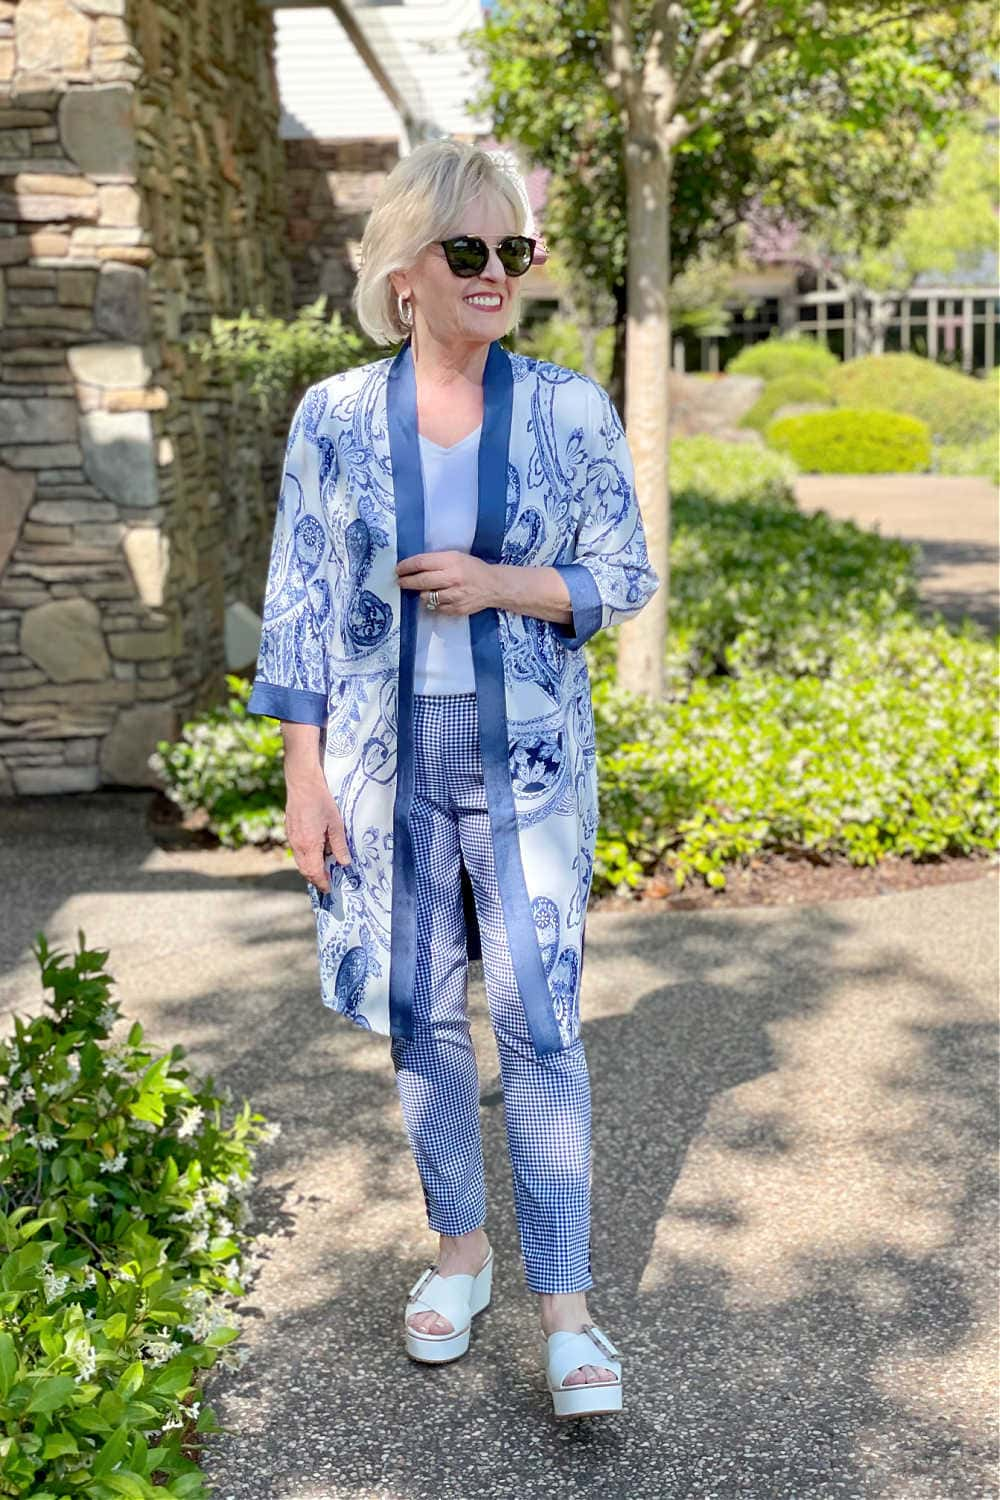 woman wearong blue and white outfit